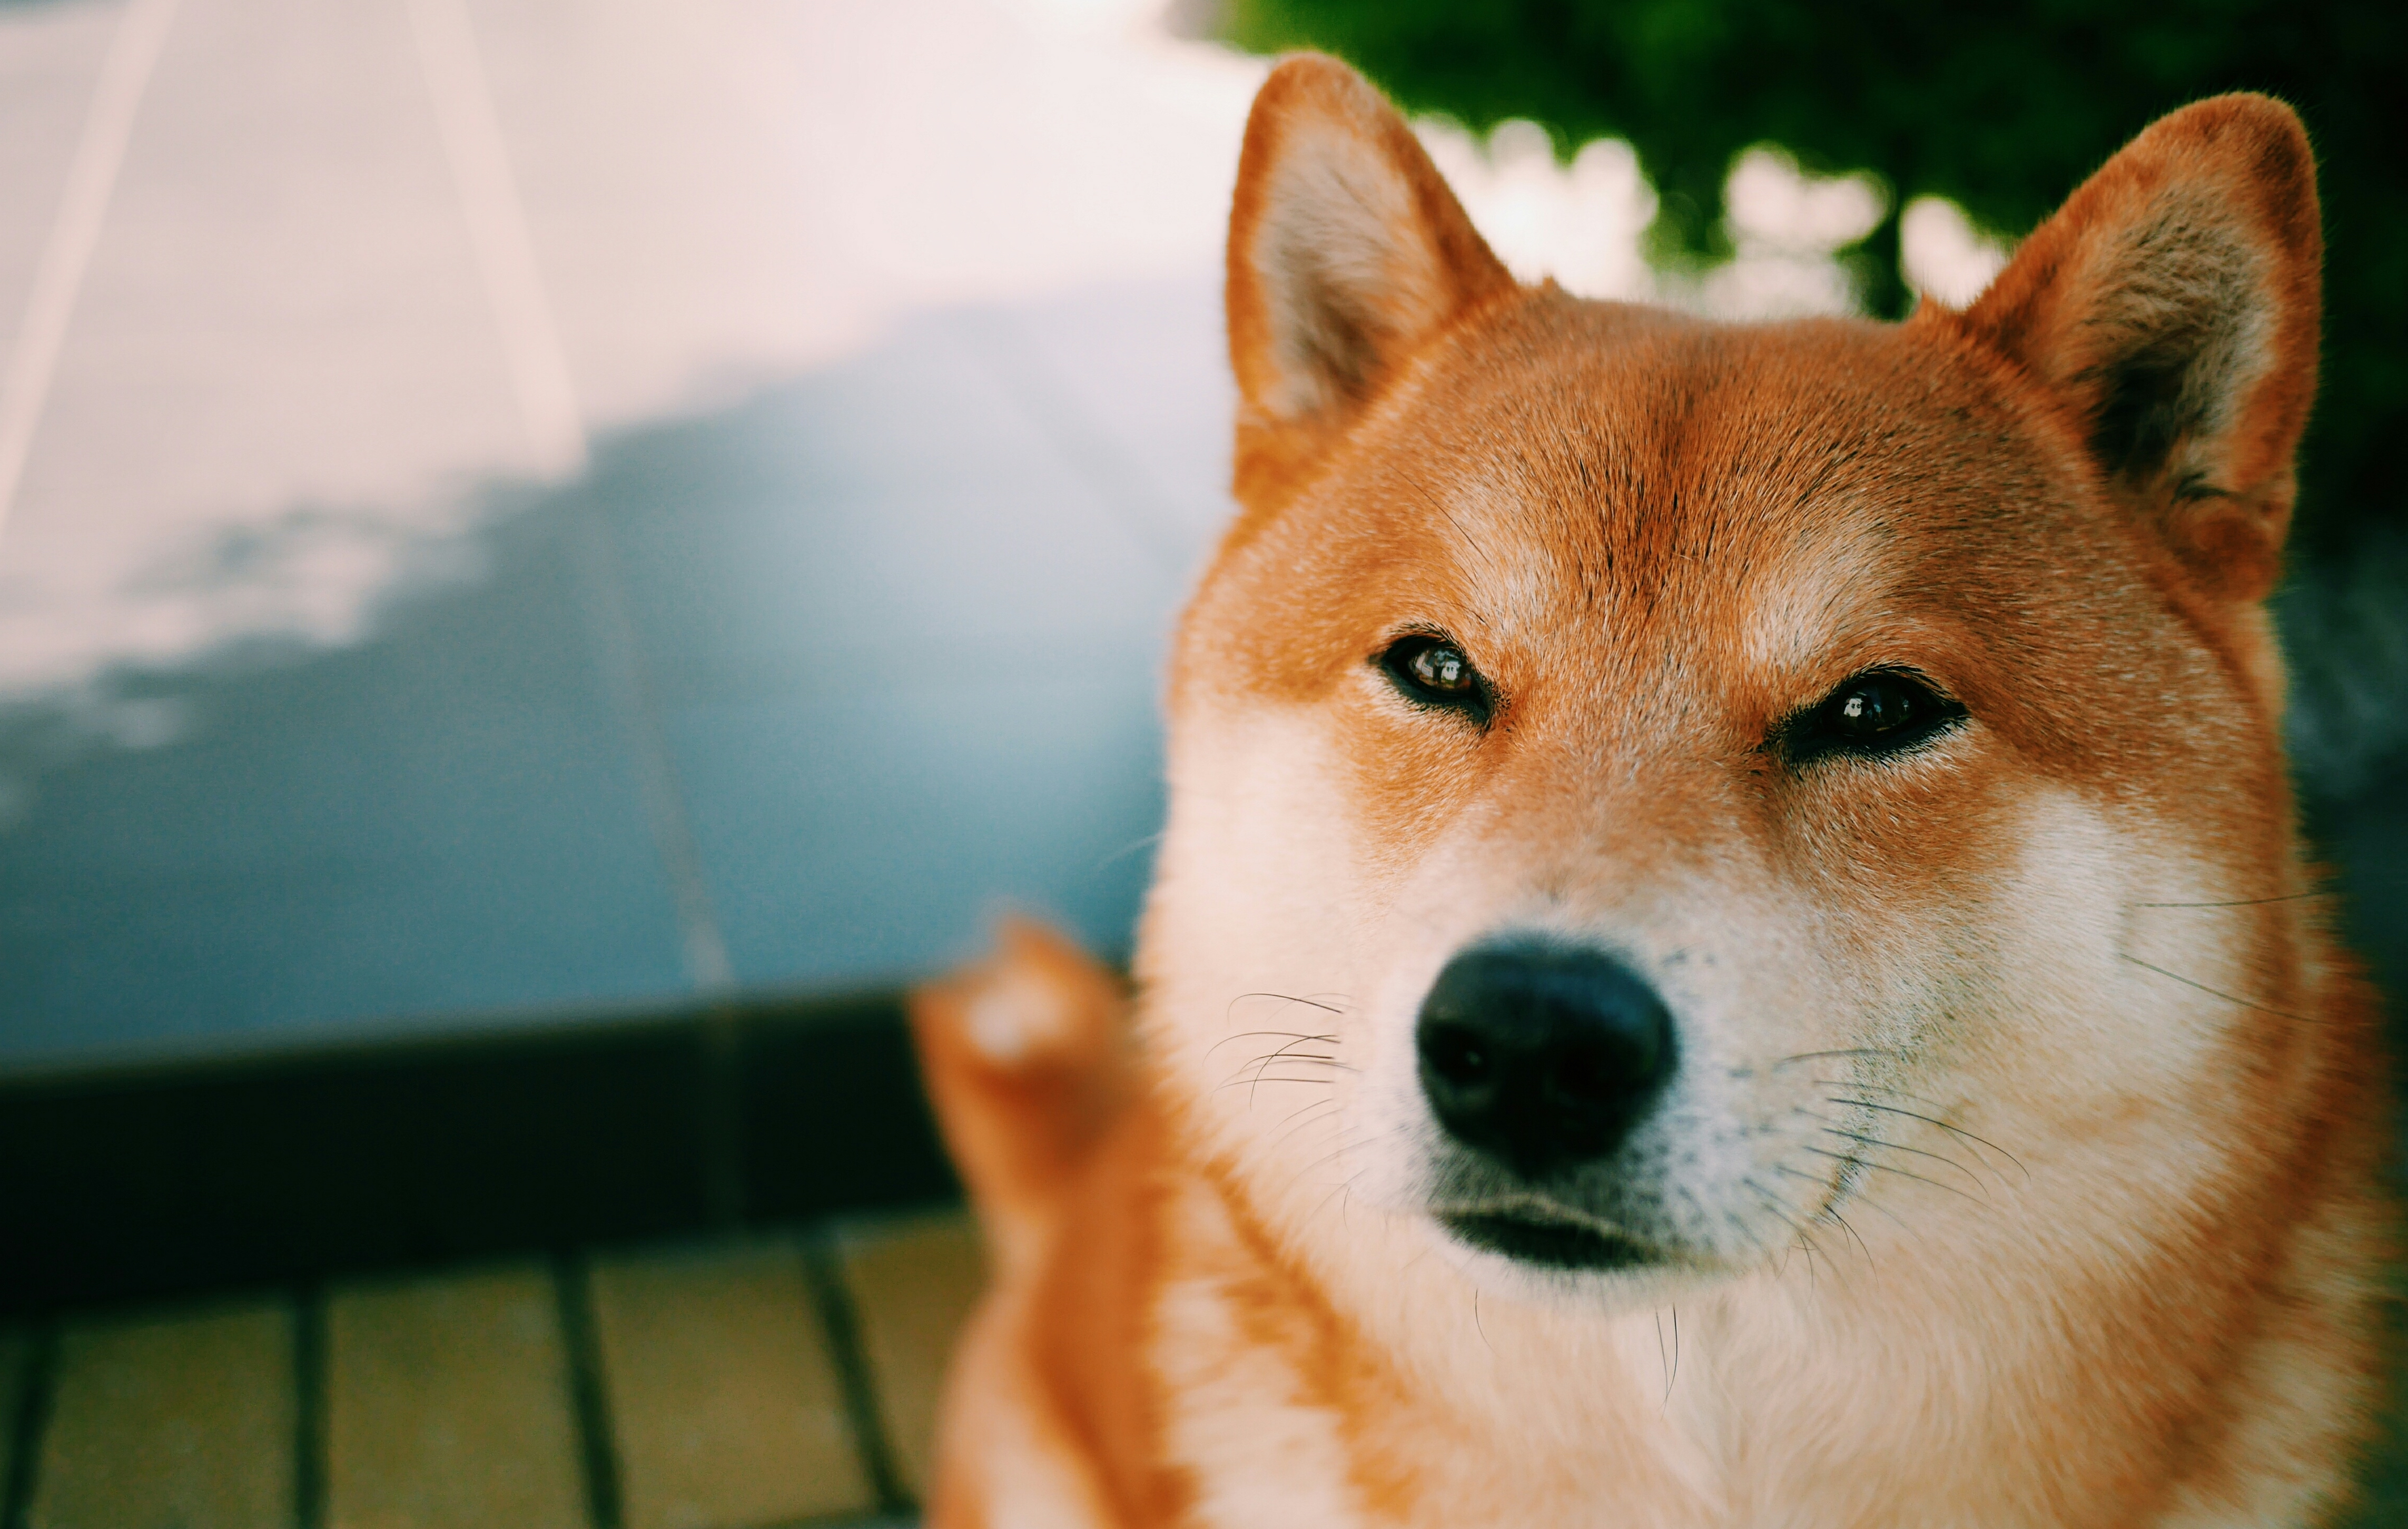 Wallstreetbets Craze Pushes Dogecoin Up 5x In 24 Hours Ars Technica